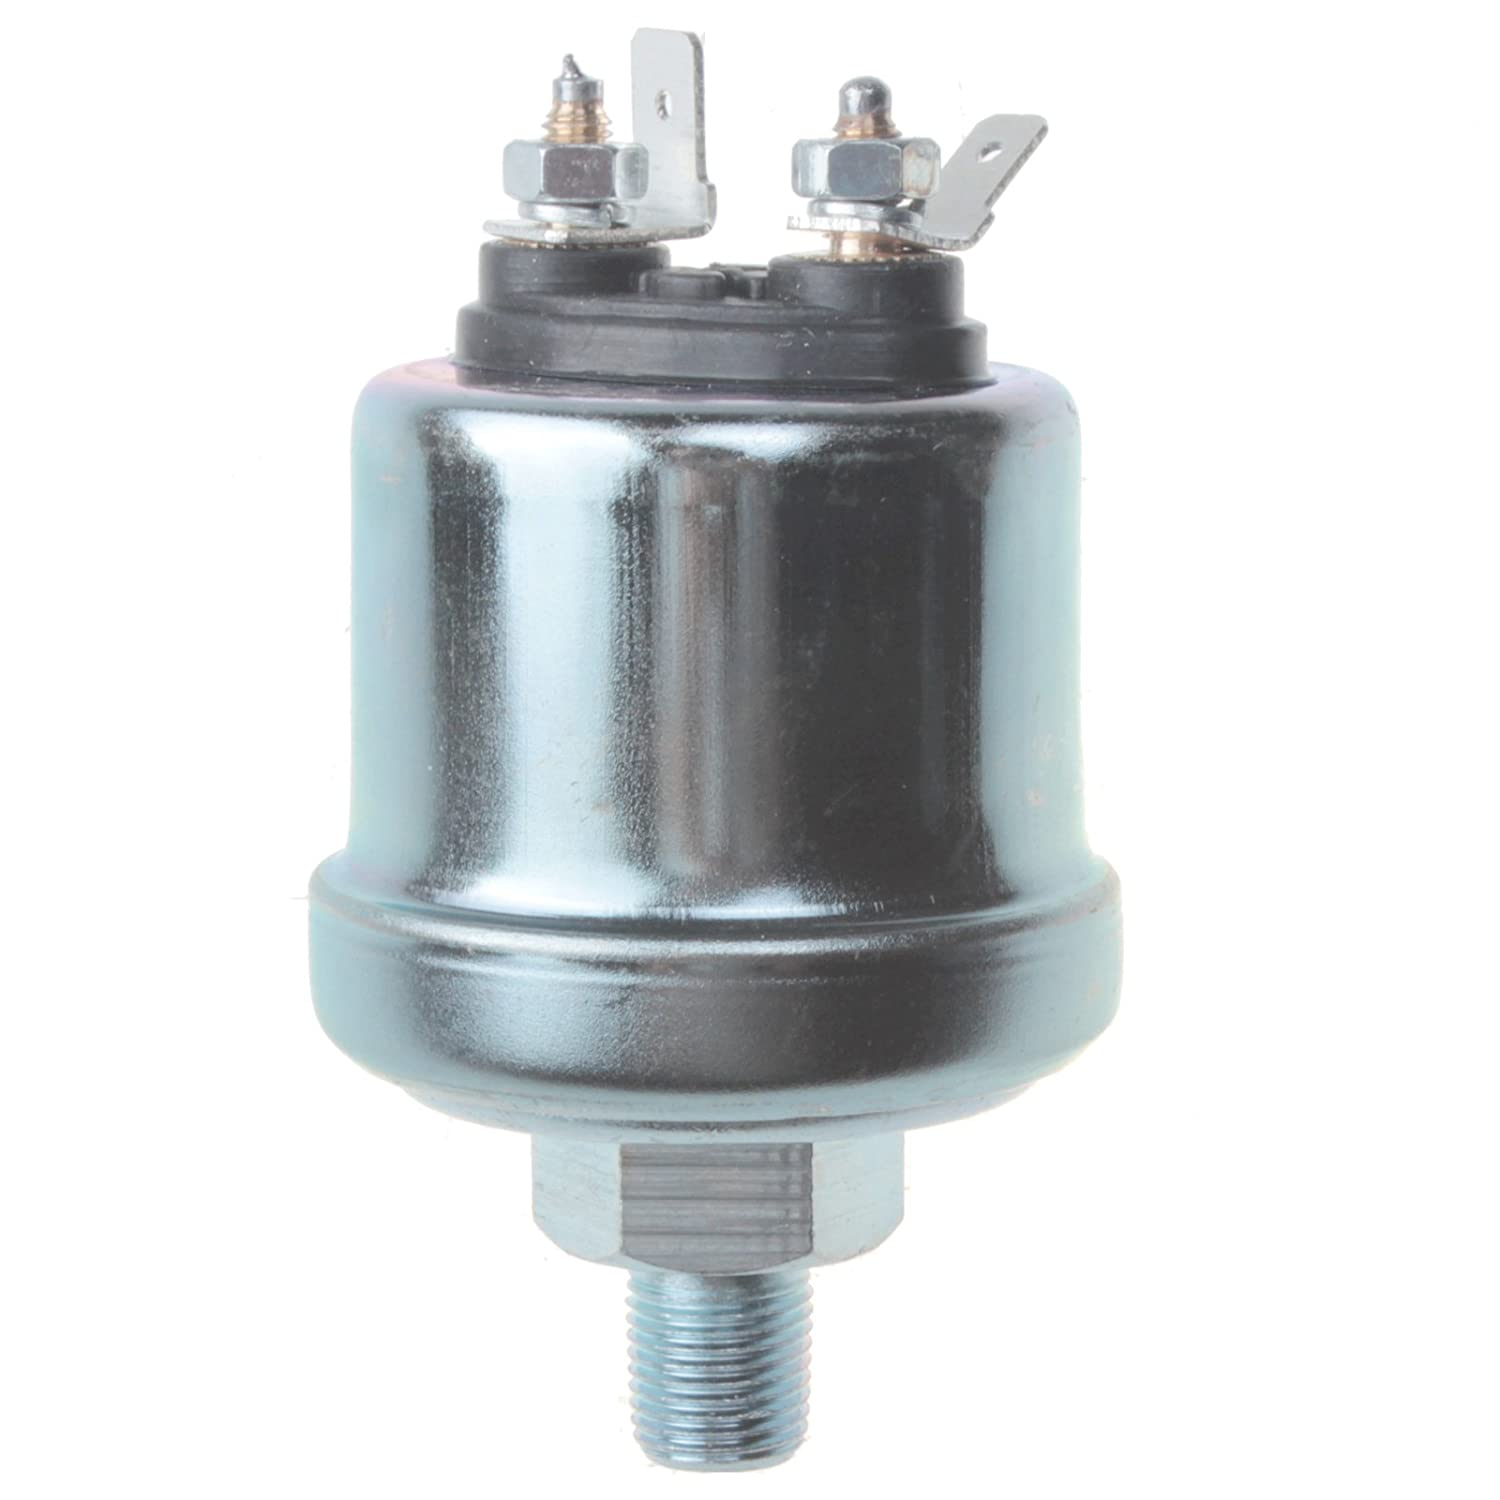 Friday Part VDO 30//138 Oil Pressure Sensor 0-10 Bar Pressure Transmitter